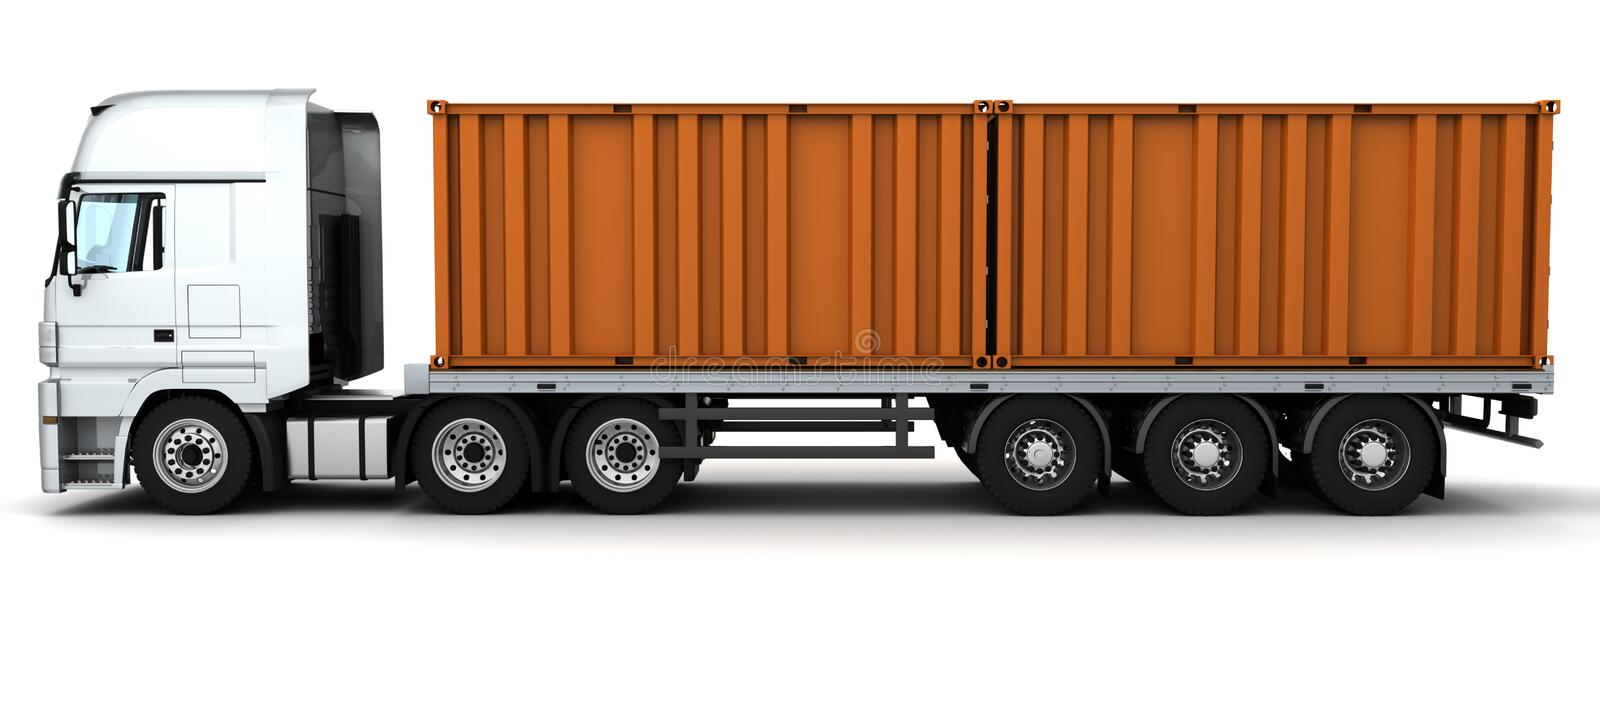 Download Freight Container Delivery Vehicle Stock Illustration - Illustration of freight, travel: 18518290